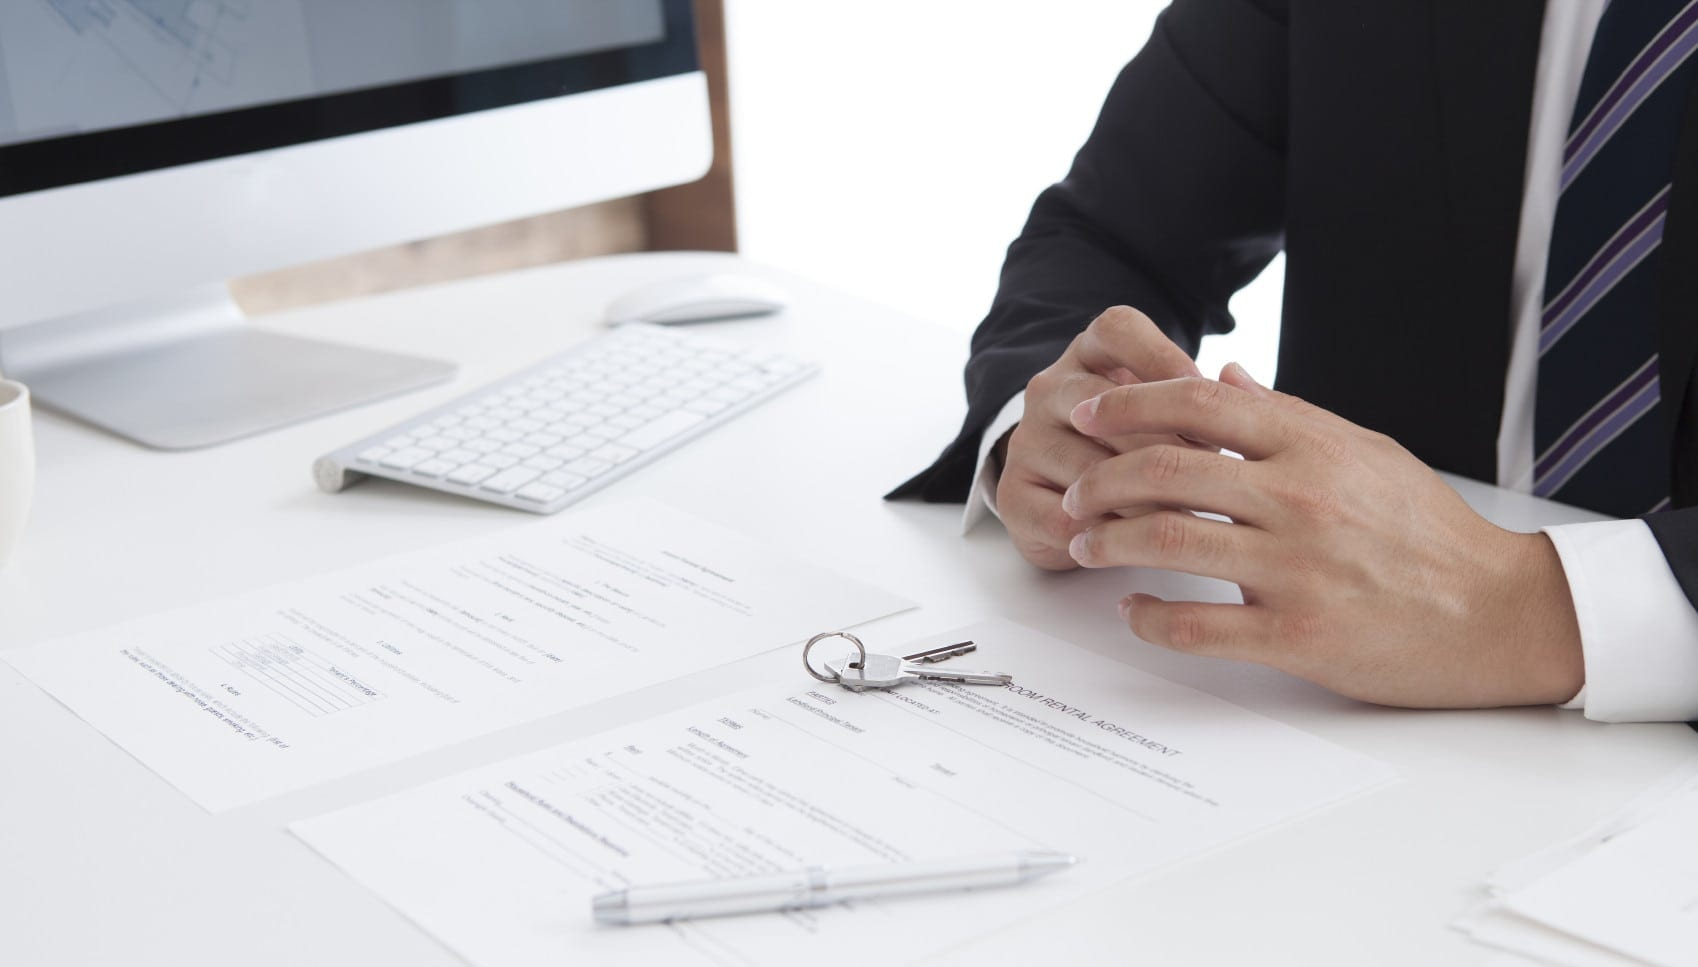 Insurance Agent Prompting Someone To Sign A Document